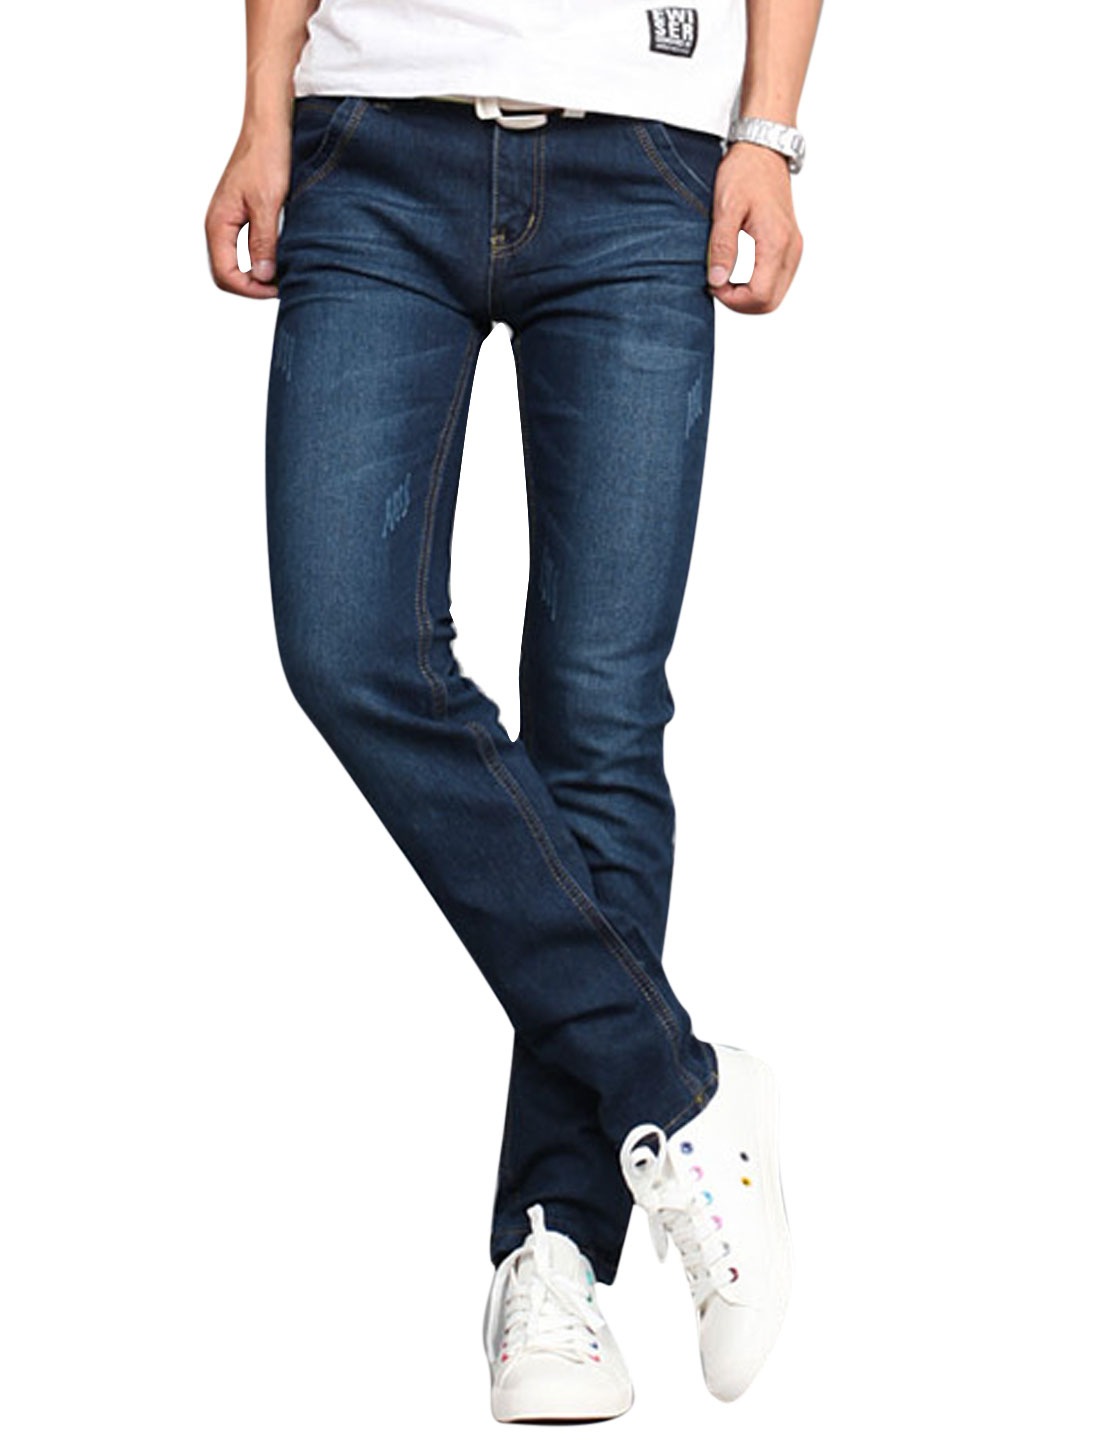 Men Mid Rise Zip Fly Button Closure Pockets Casual Tapered Jeans Navy Blue W30